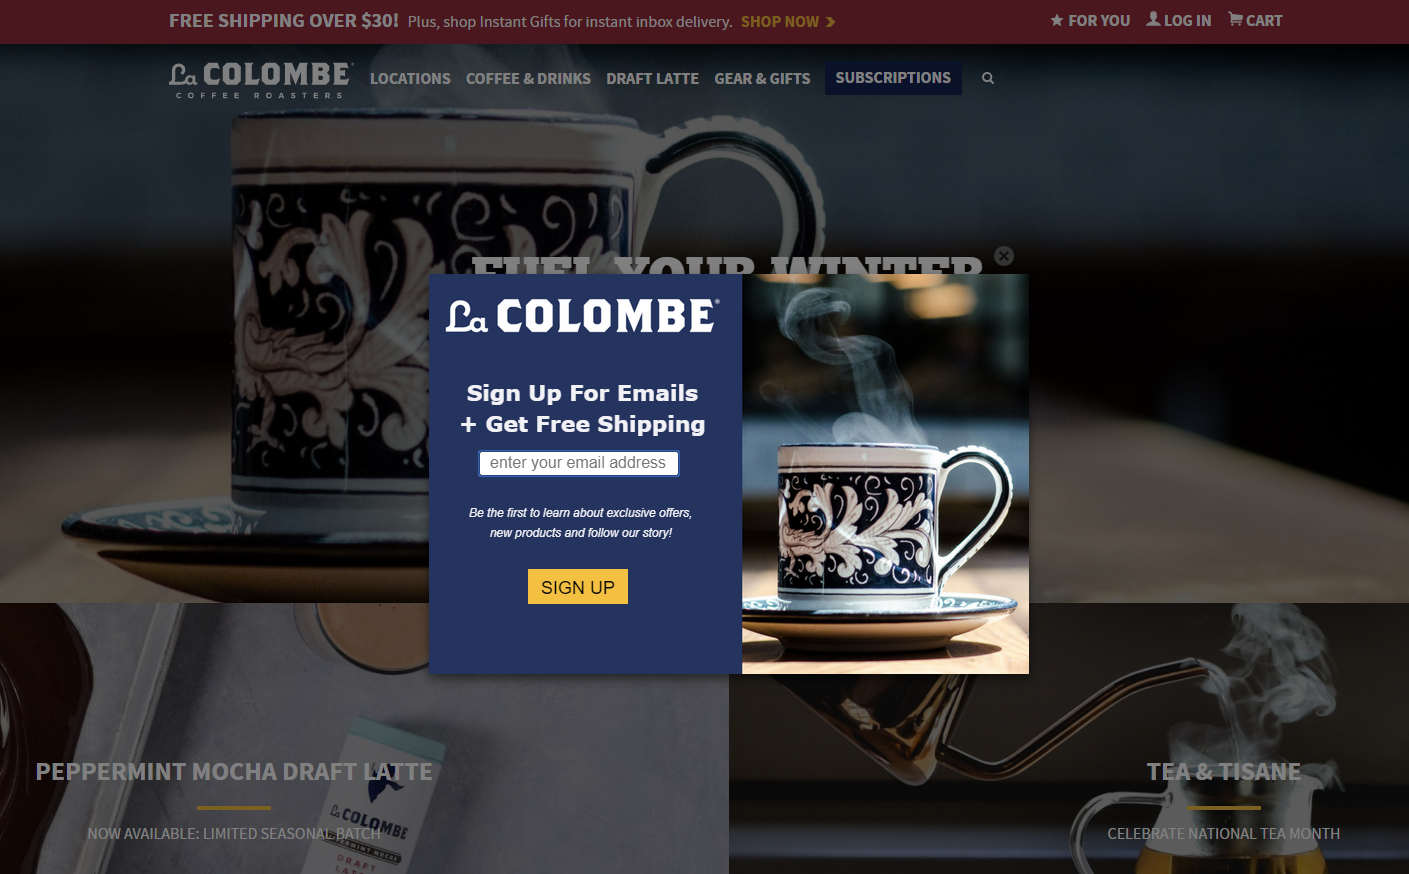 A popup on Lacolombe.com offering free shipping to new subscribers